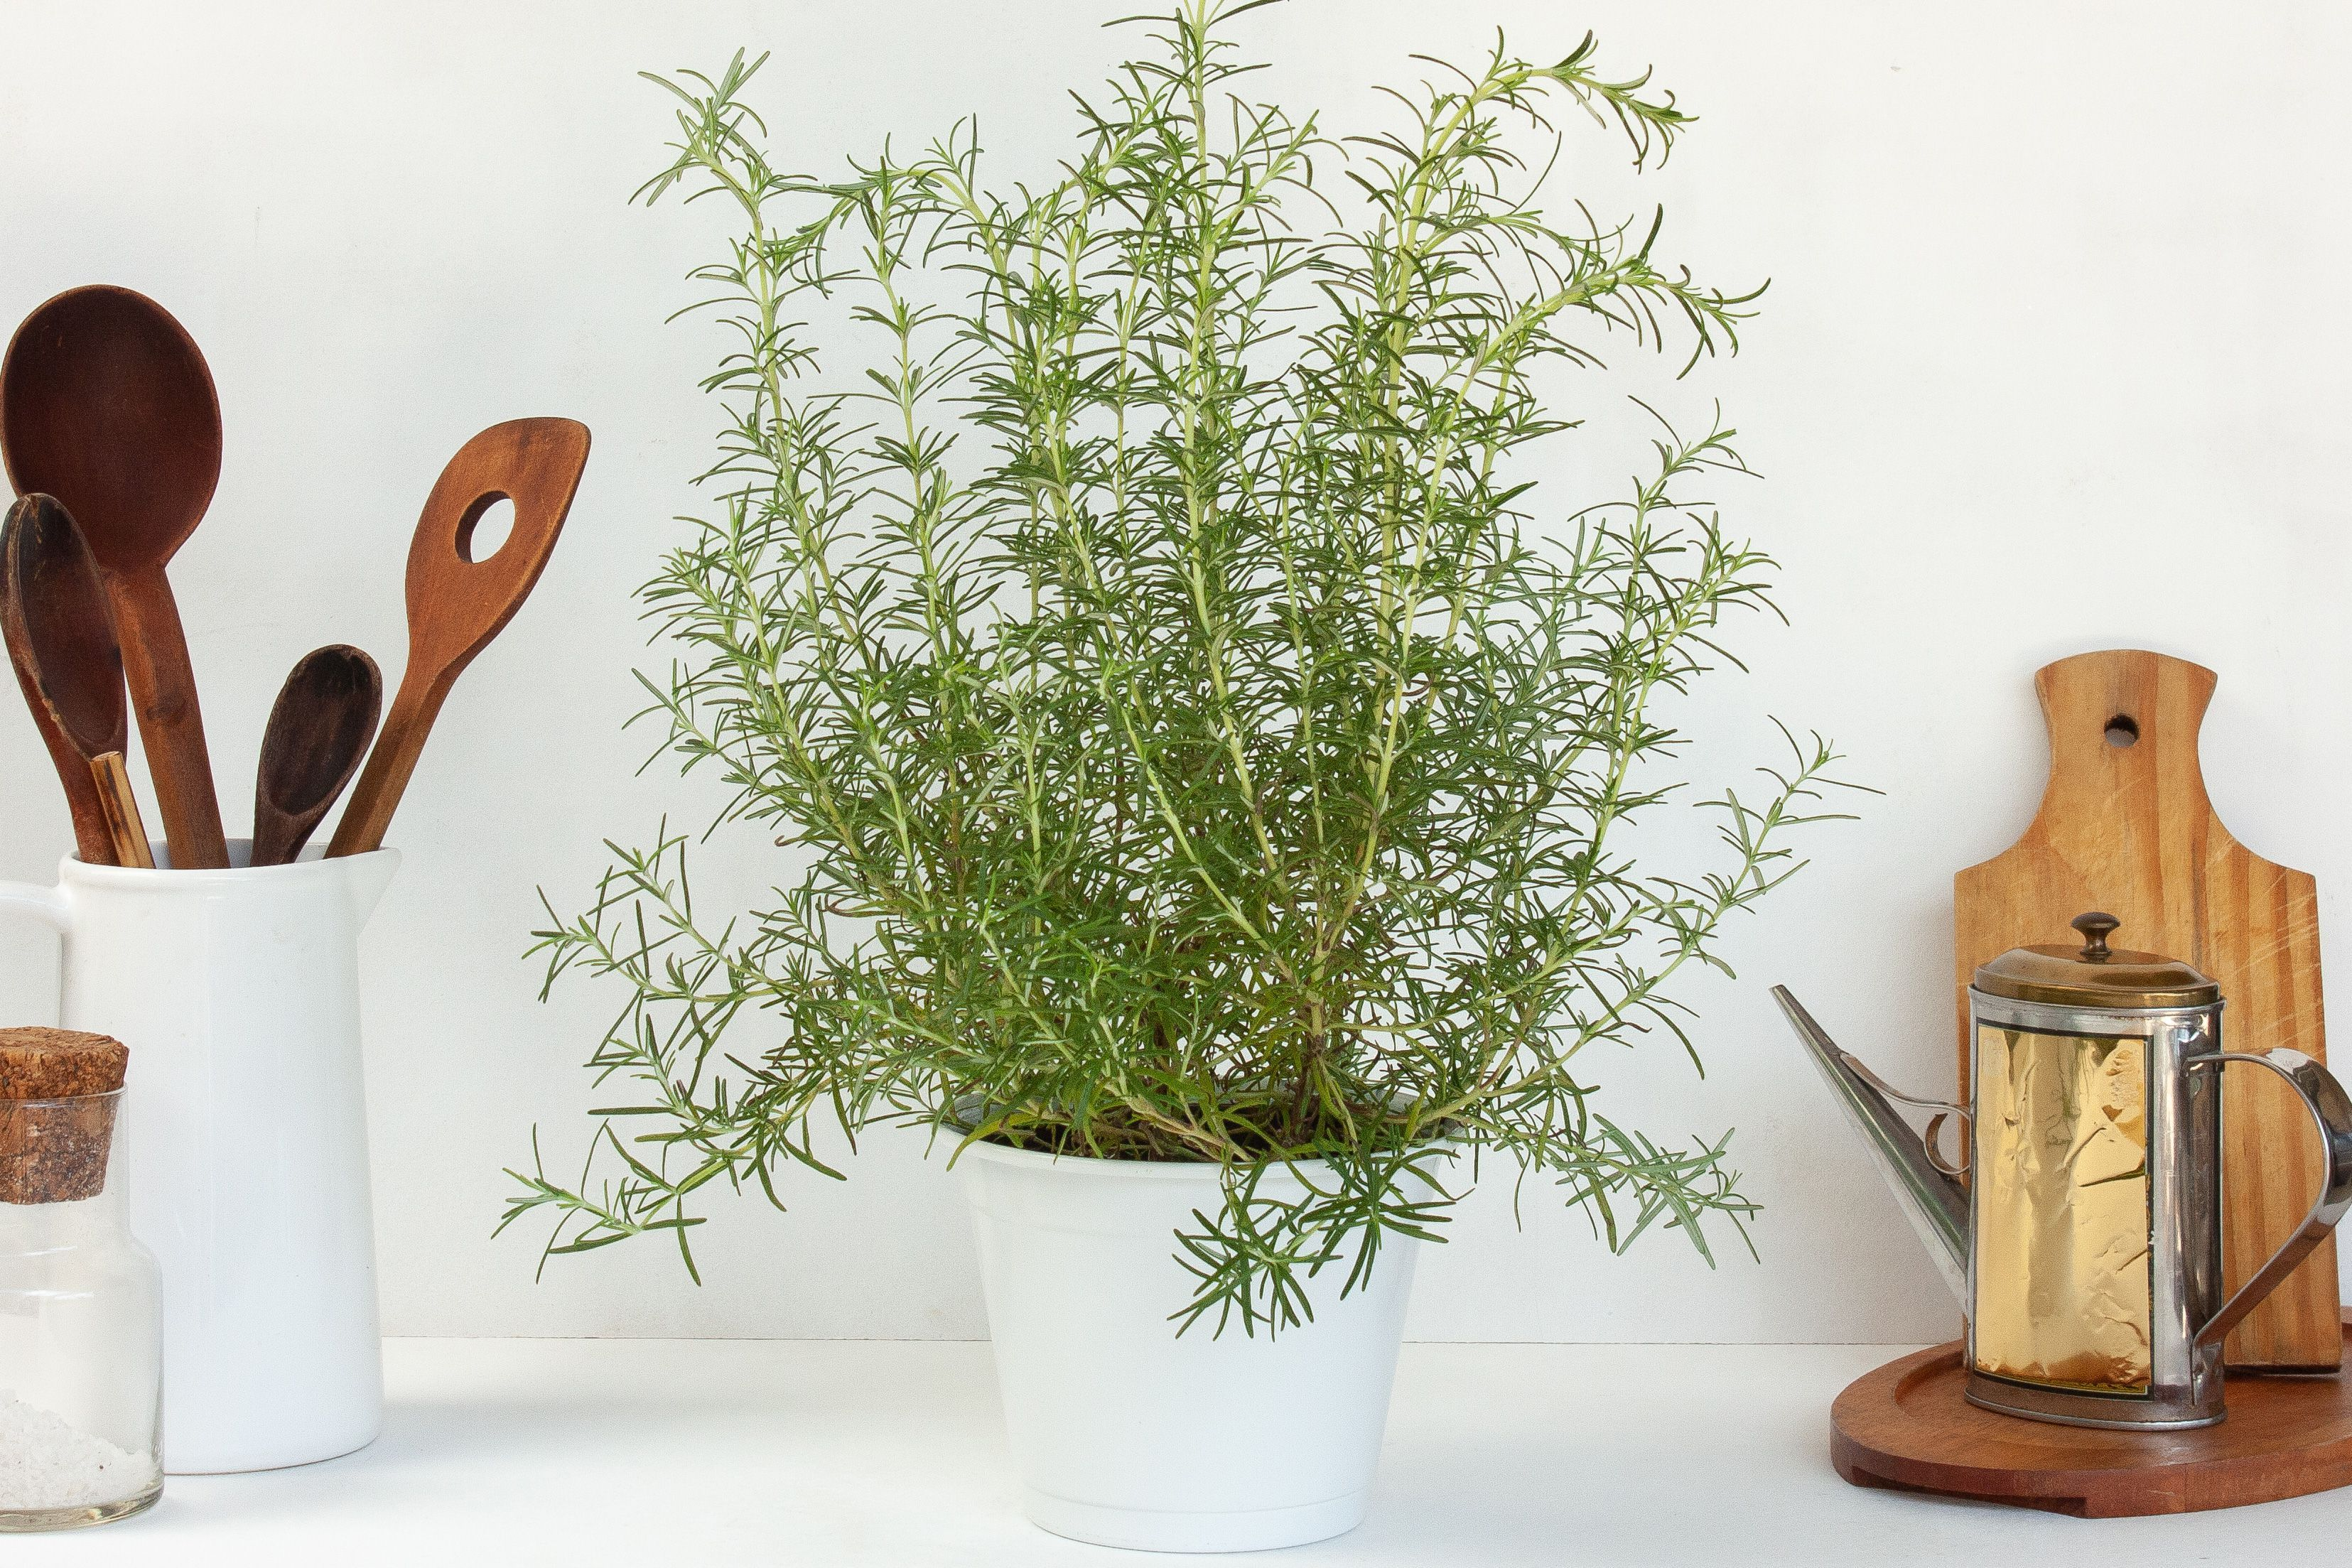 Growing rosemary plants indoors in 2020 rosemary plant